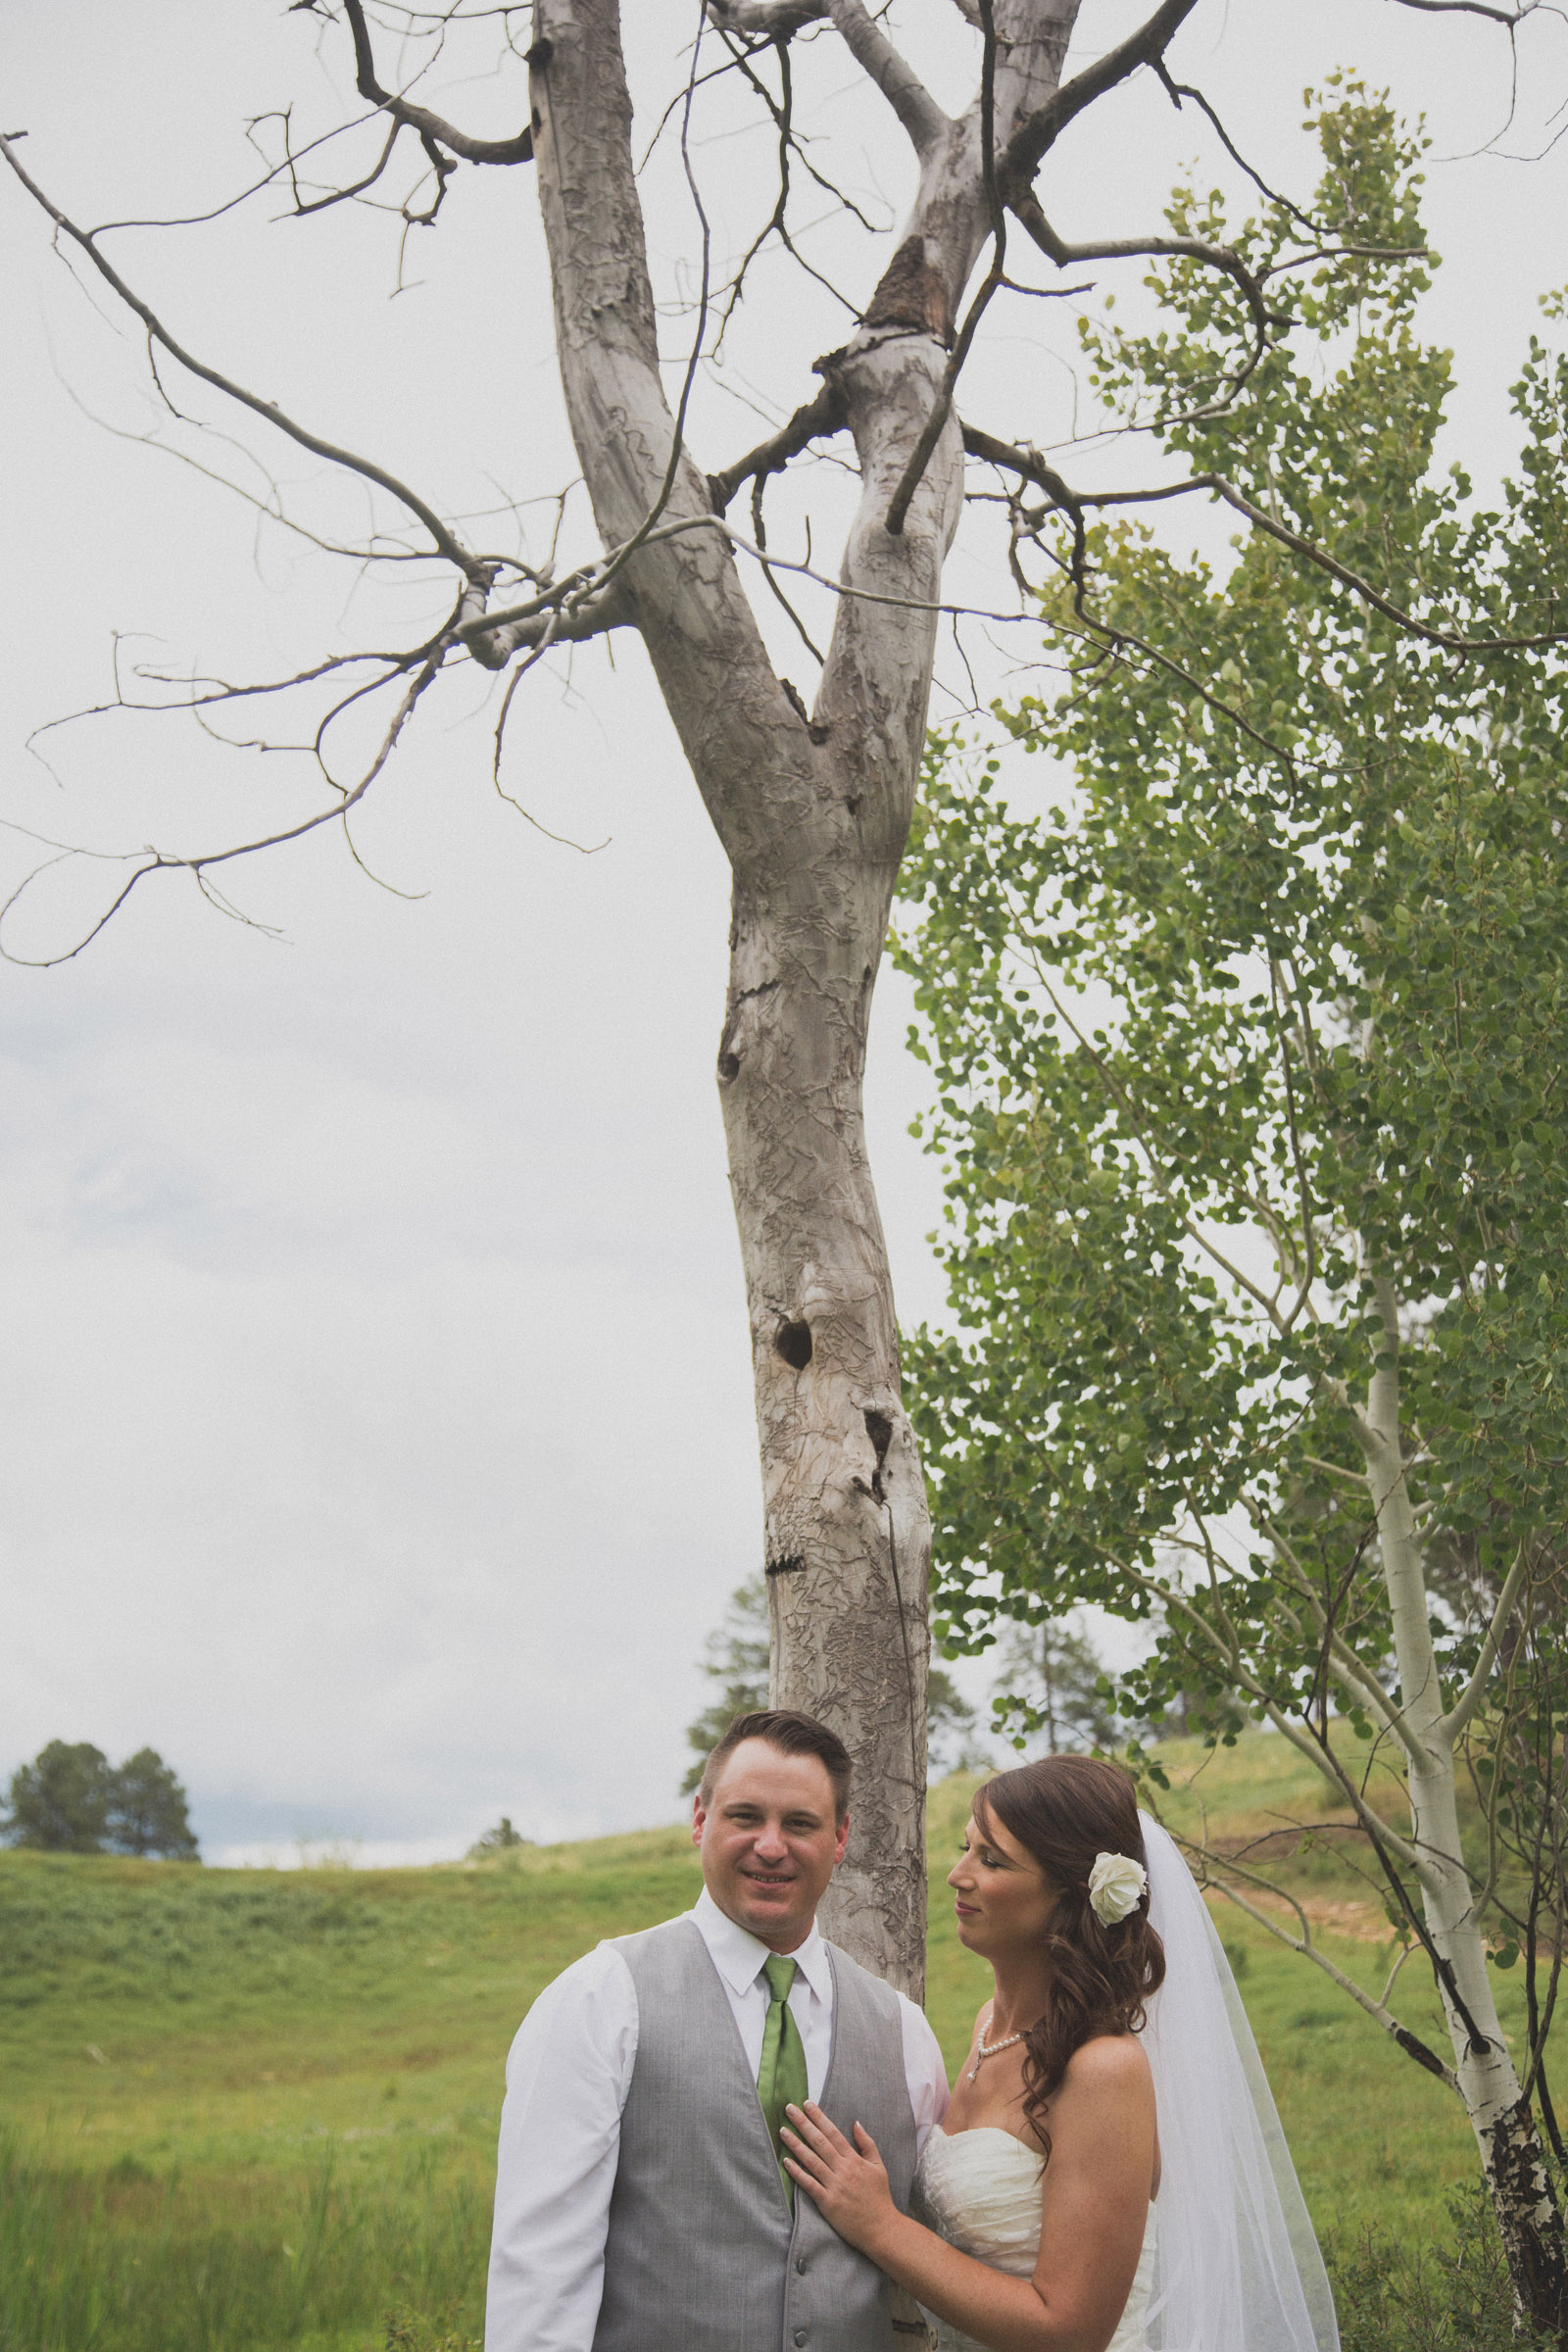 081-lake-trees-groom-bride-wedding-cabin-woods-forest-pictures-photos-dress-photography-portraits-first-look-firstlook-reveal-happy-farmington-aztec-durango-mancos-co-nm